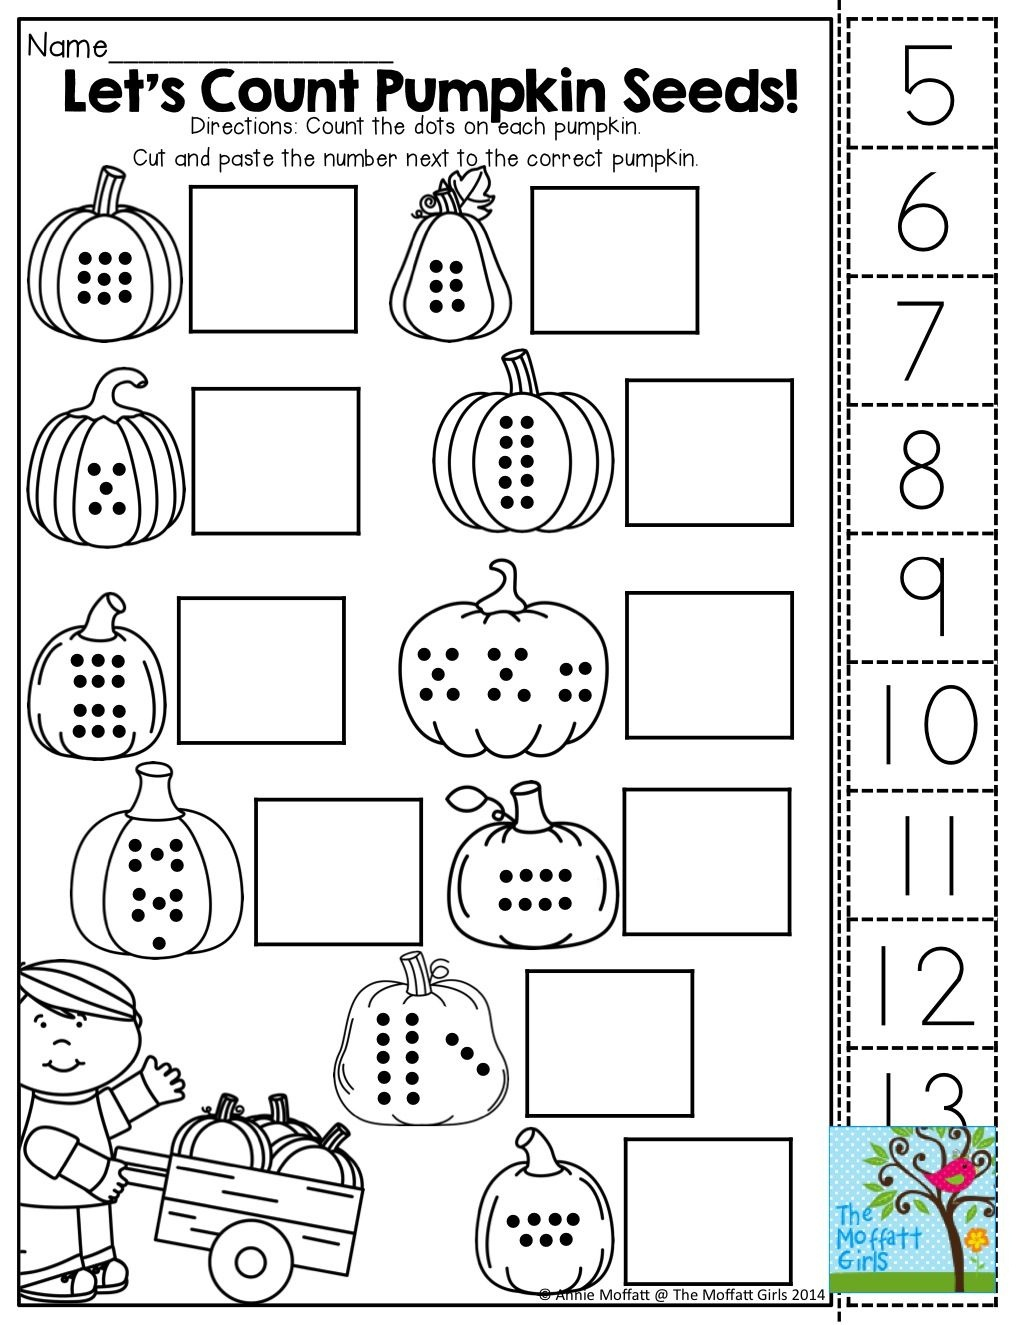 Count, Cut And Paste! Tons Of Fun Printables! | October | Preschool - Free Printable Kindergarten Worksheets Cut And Paste